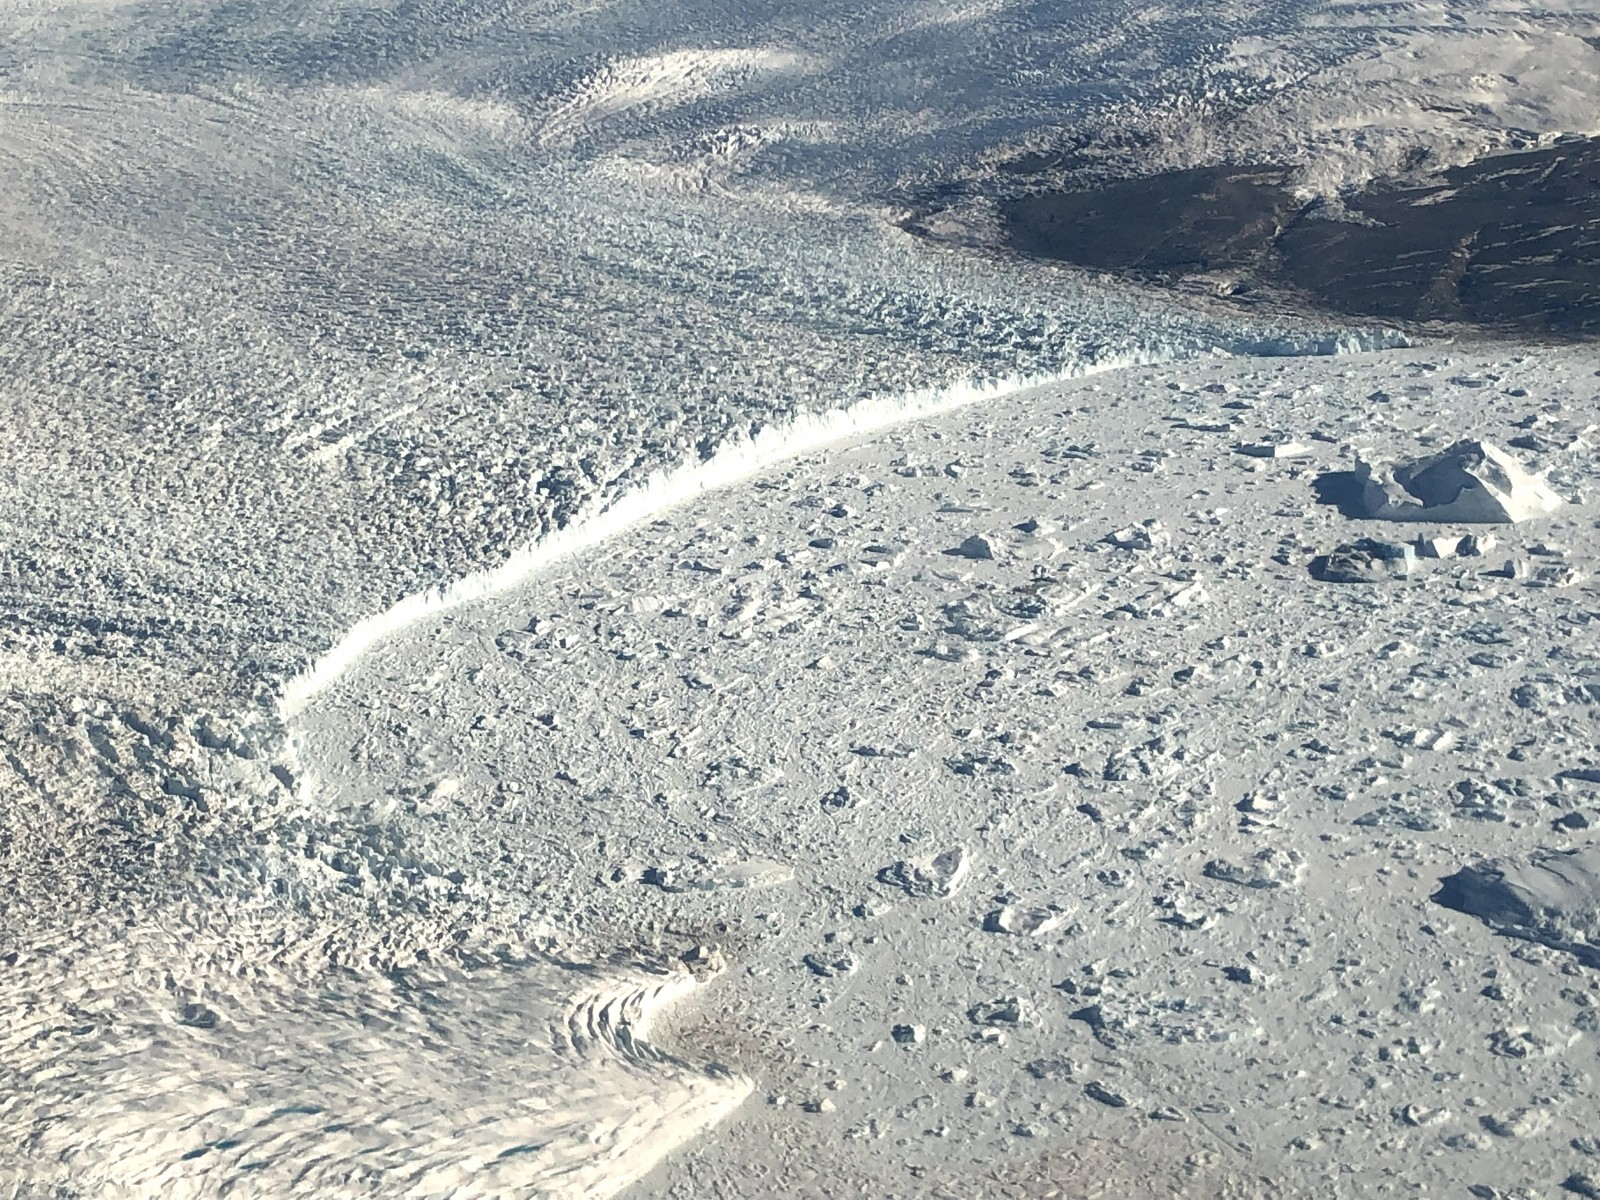 Shrinking of Greenland's glaciers began accelerating in 2000, research finds